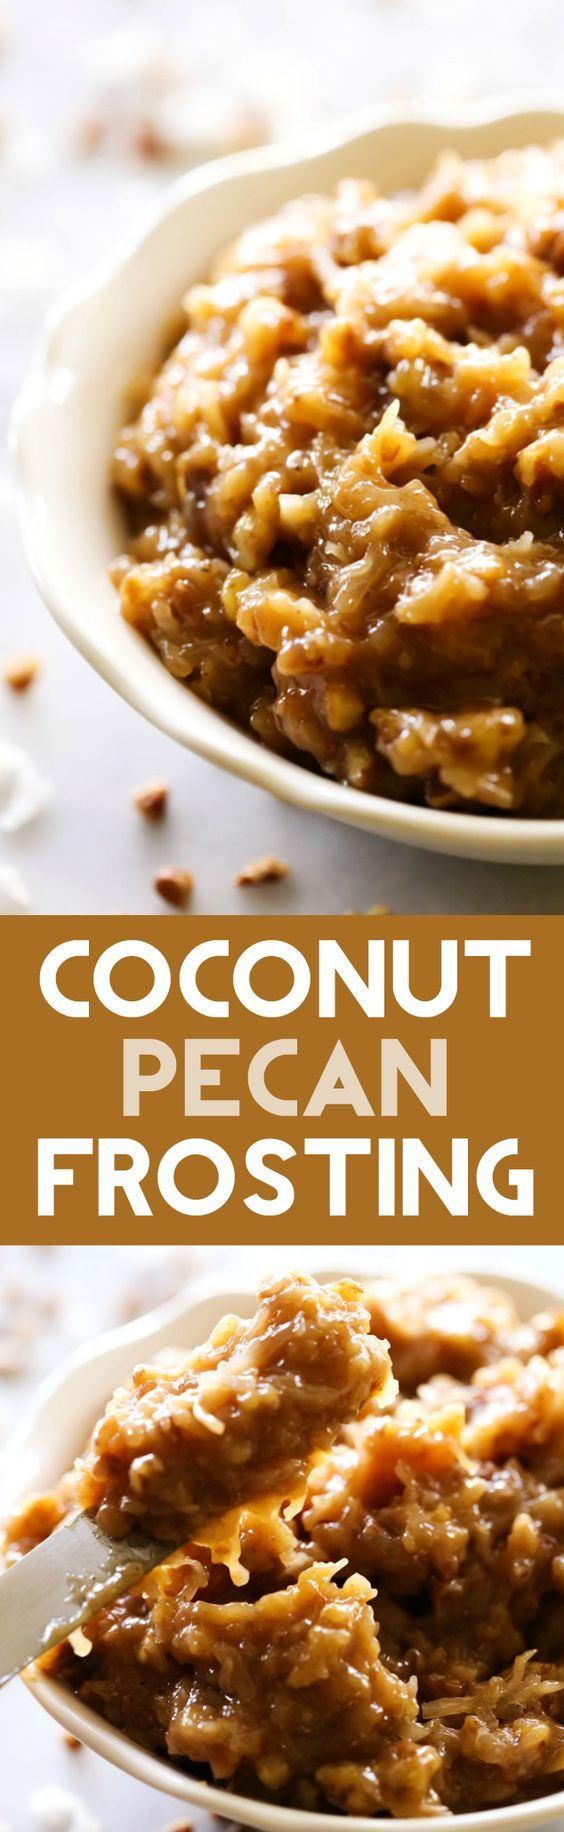 Coconut Pecan Frosting - Chef in Training